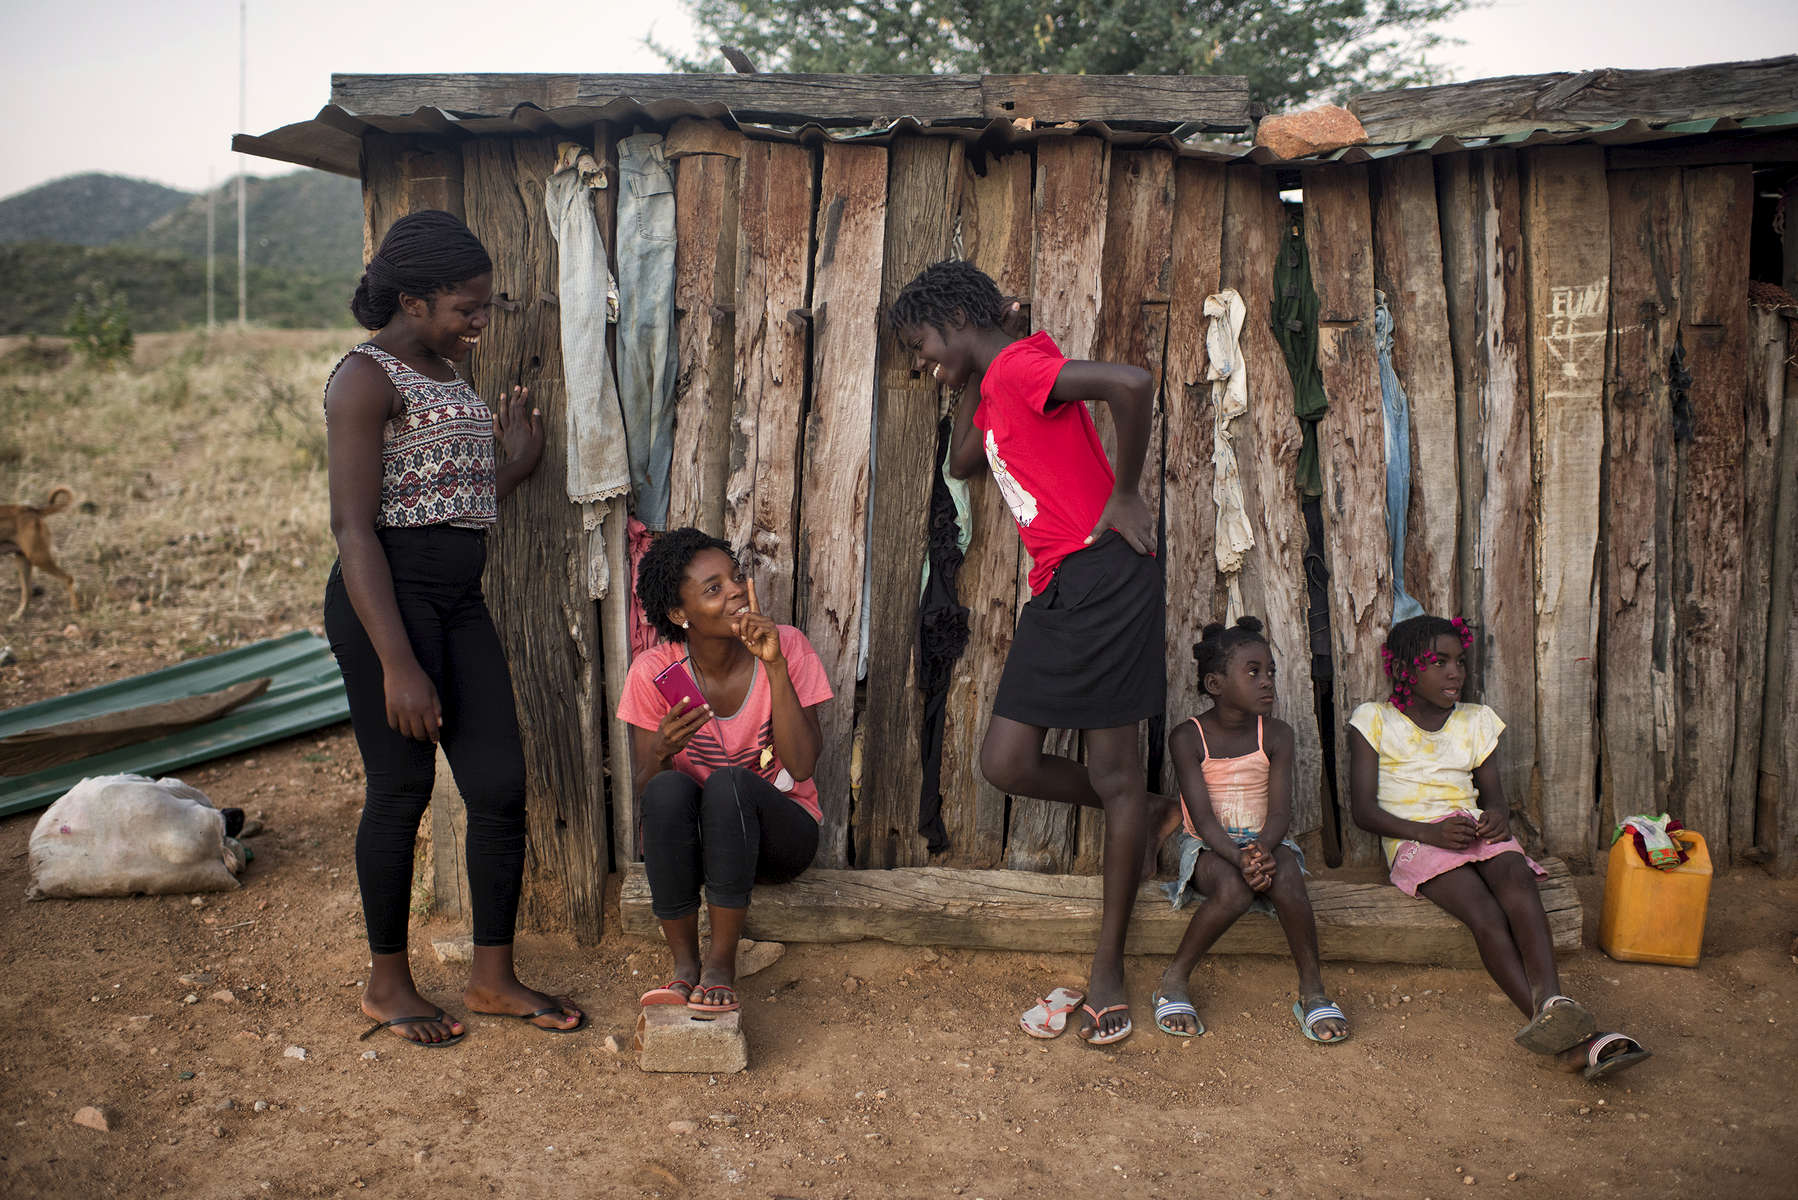 May 6, 2018: KANENGUERERE, ANGOLA - HALO deminers Imaculada Celestino and Suzana Soares visit with some of the children of Kaneguerere village - fourteen year-old Aurora, Suzy and Wandi on Sunday afternoon. The family moved into the village recently so that the children could go to school, and they have a small plot of land by the river where they grow a few vegetables.  The girls, especially, love the HALO deminers and want them to stay in the village forever. The HALO team has Sundays off, so the day is spent going to church, relaxing, and getting caught up on work.  These deminers are working under extremely difficult circumstances in Kanenguerere.  Not only is extremely hot - with snakes and scorpions common - but much of the mined area is on the side of an extremely steep hill, making every step dangerous. The area was mined during the civil war by government forces to protect the nearby railway line that can be seen in the background, as well as various troop positions. It is currently used by roughly 170 people including village residents and nomadic herders - many of whom are young children - who pass through uncleared land every day.